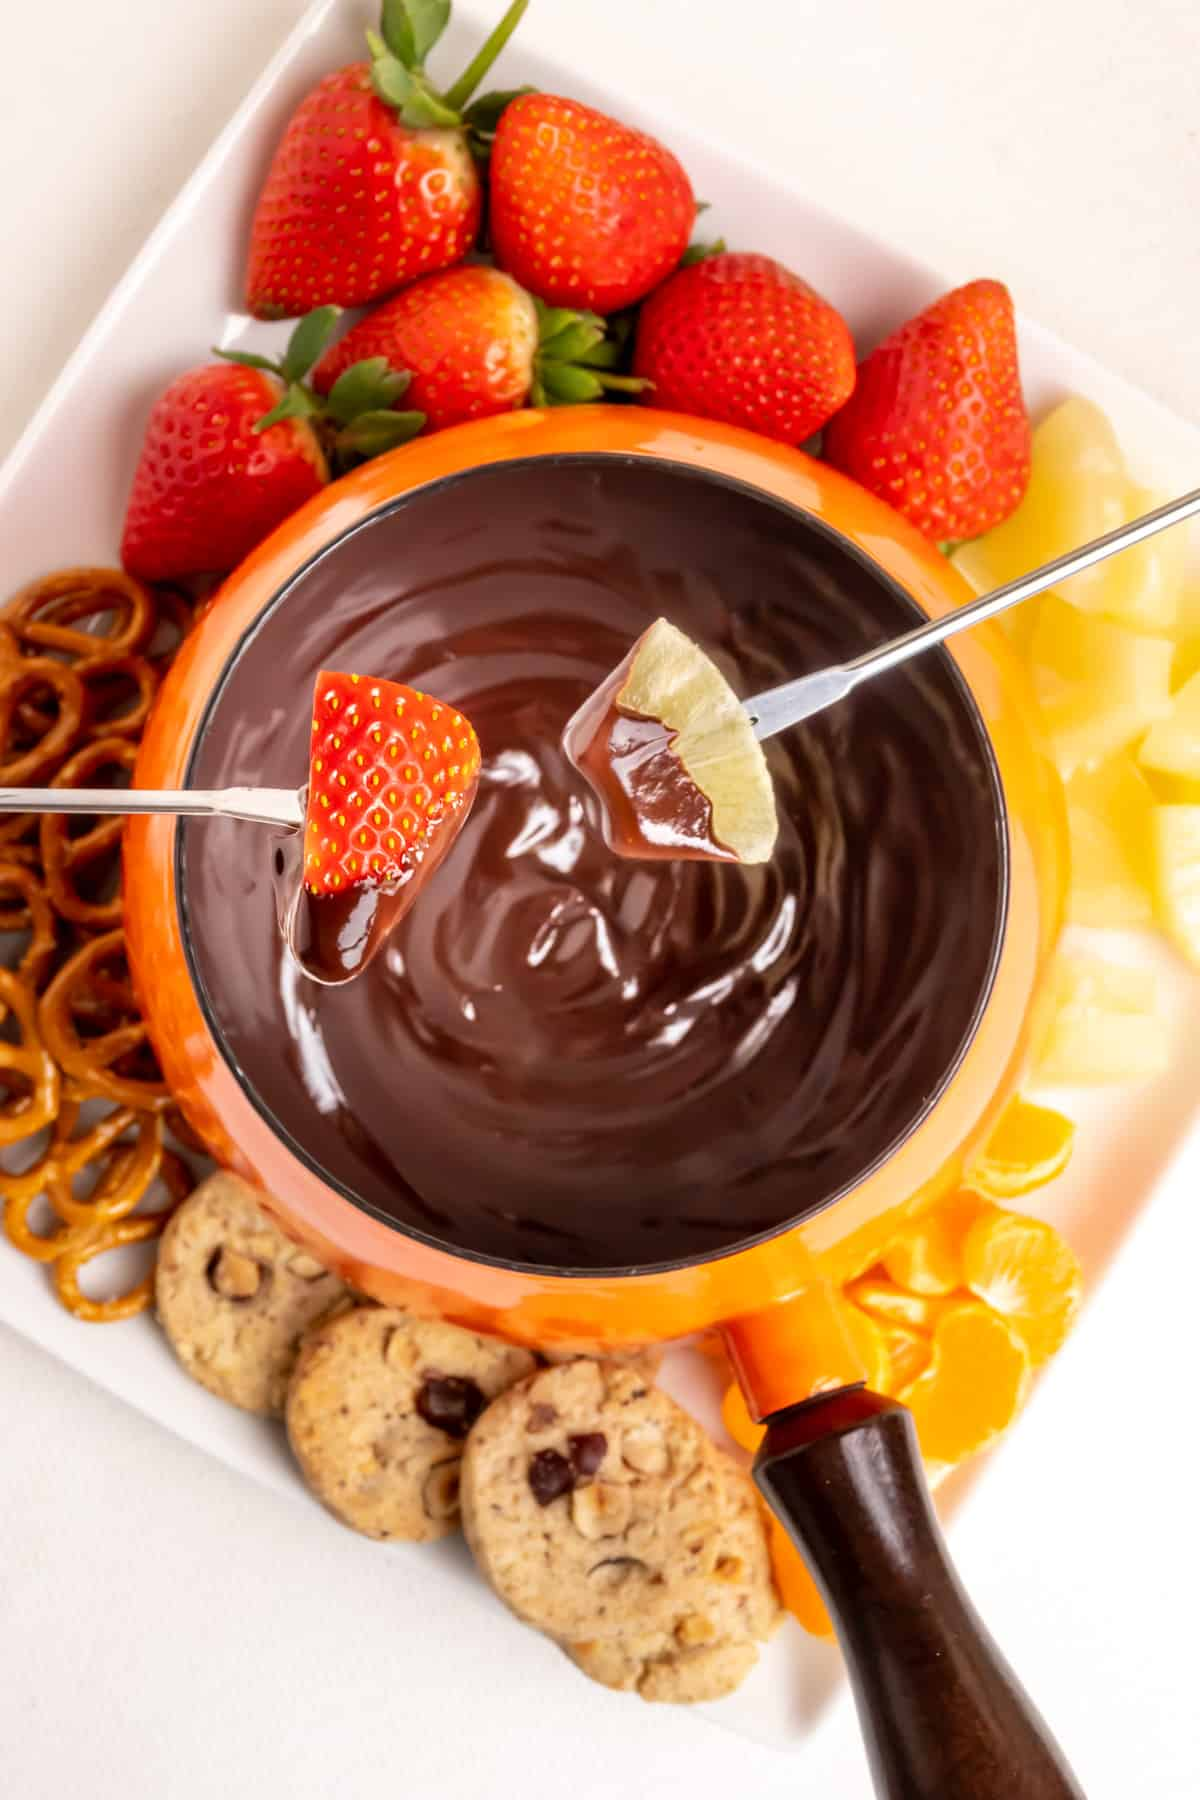 Dipping strawberry and pineapple into a pan of chocolate fondue.